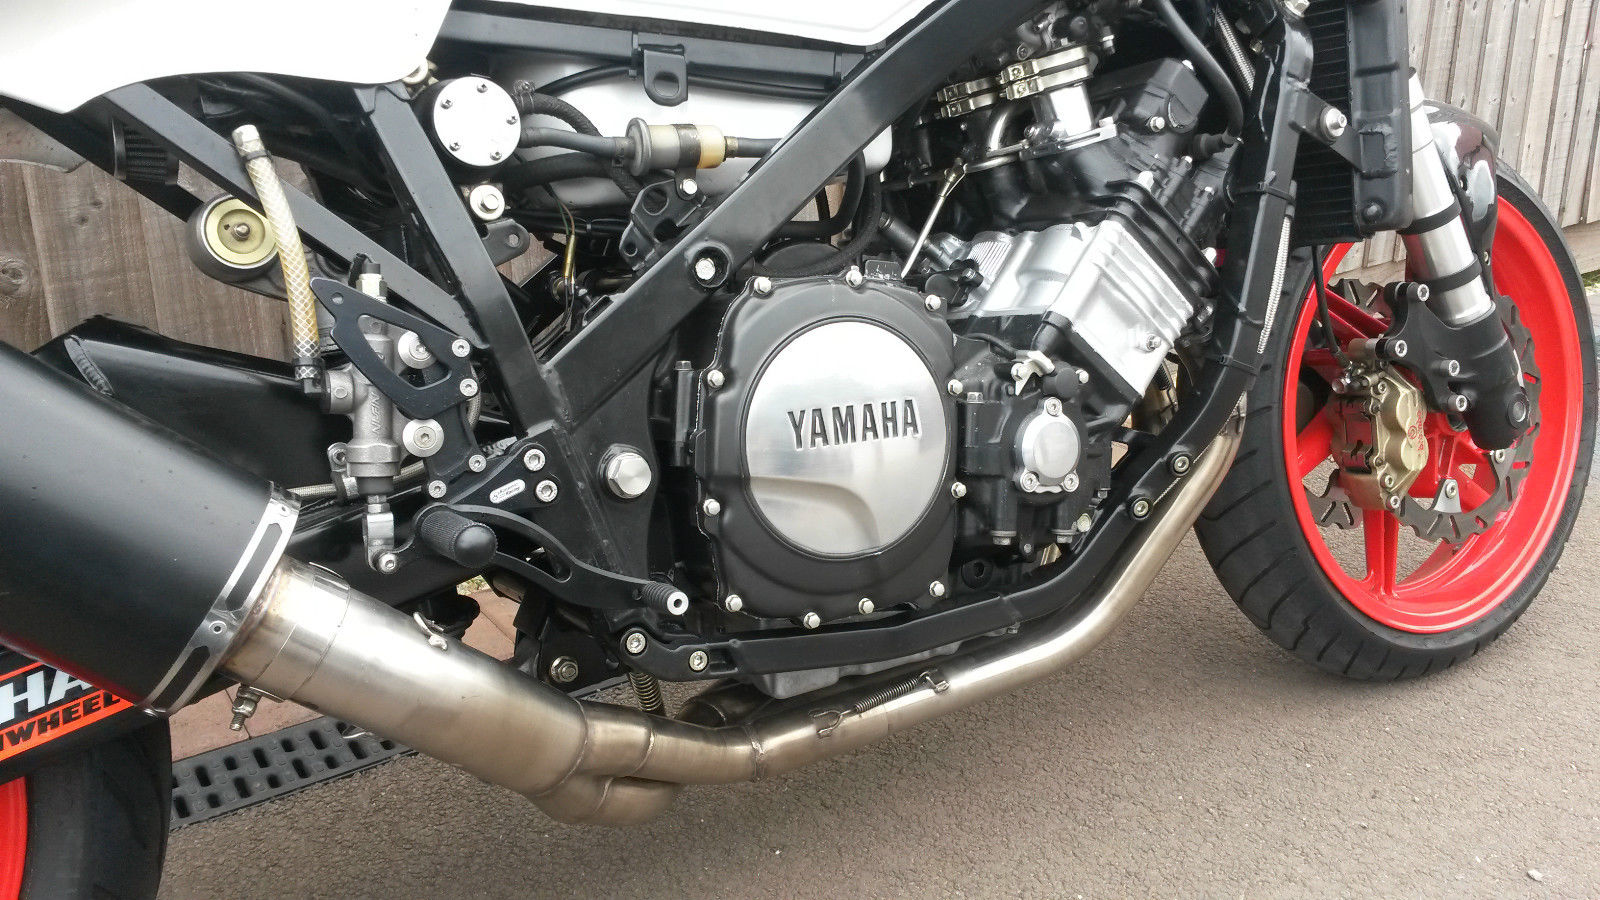 yamaha fz 750 2mg rocketgarage cafe racer magazine to sum up this bike is no trailer queen its a well thought out and engineering track and road bike suitable for track days and as a sunday toy to enjoy